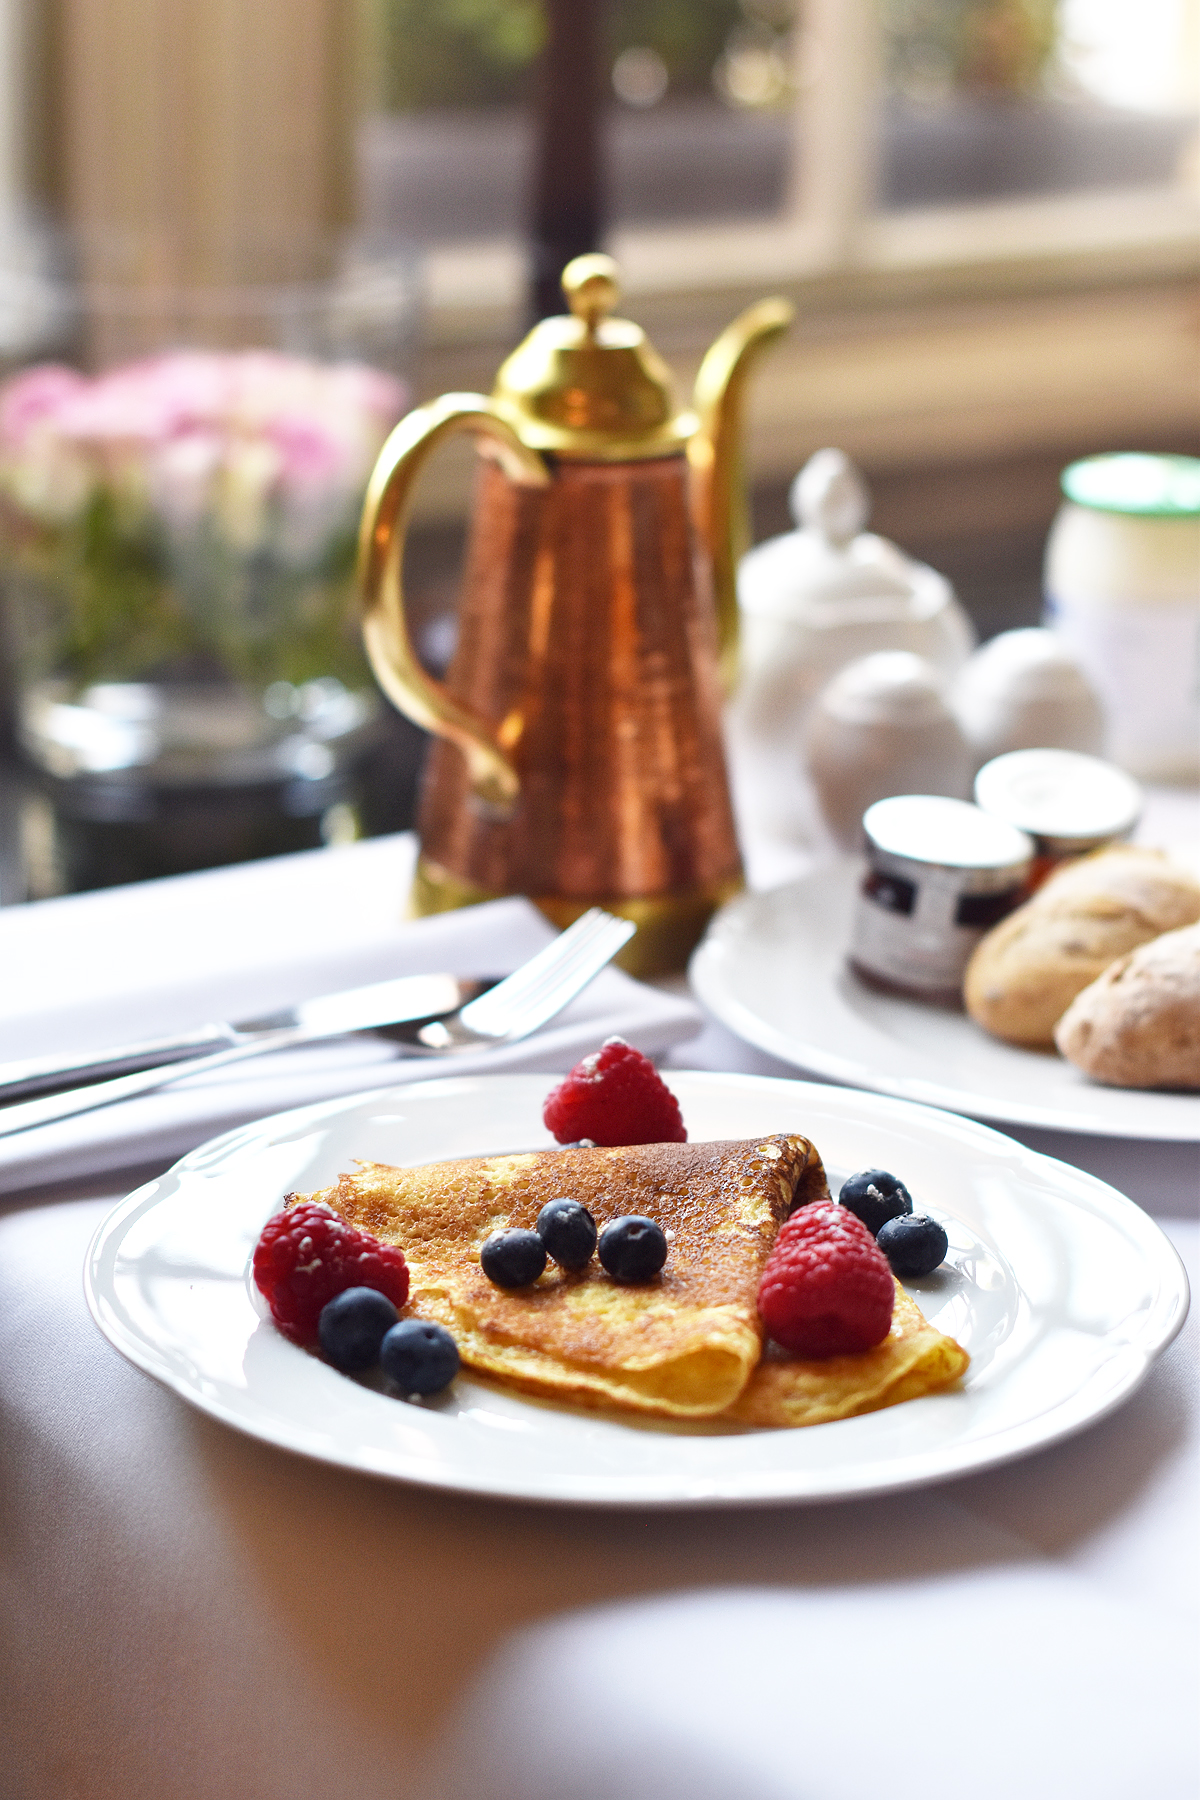 irenevanguin-travel-hotspot-brugge-bruges-hotel-tuilerieen-suite-executive-royal-prosecco-breakfast-buffet-pancakes-crepe